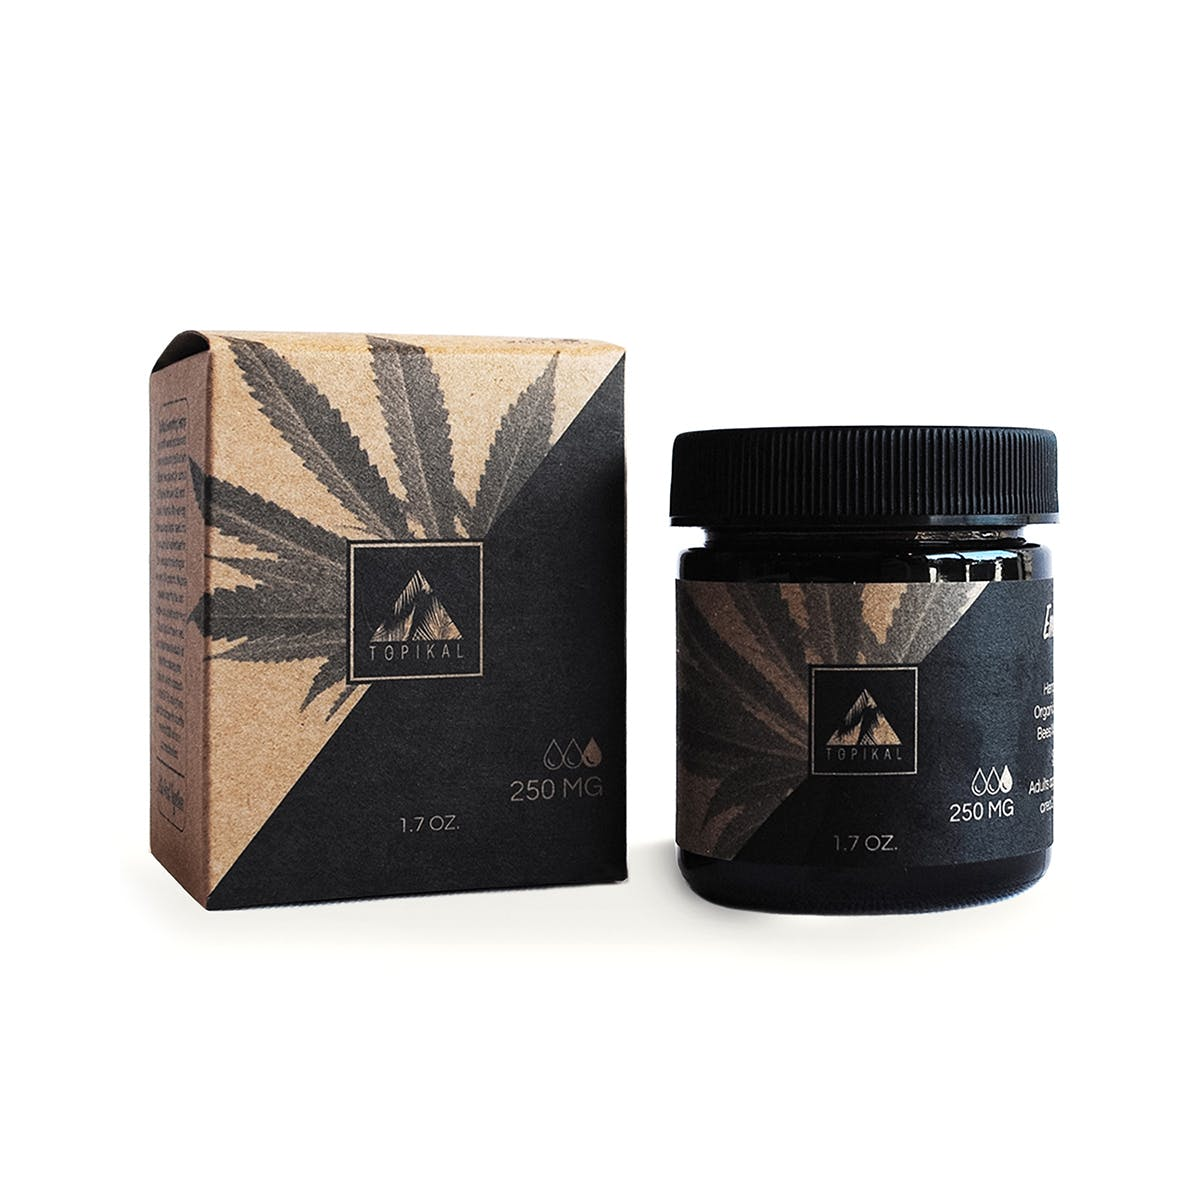 marijuana-dispensaries-4sure20-grand-opening-21-in-tujunga-100-25-pure-organic-emu-oil-salve-250mg-cbd-1-7oz